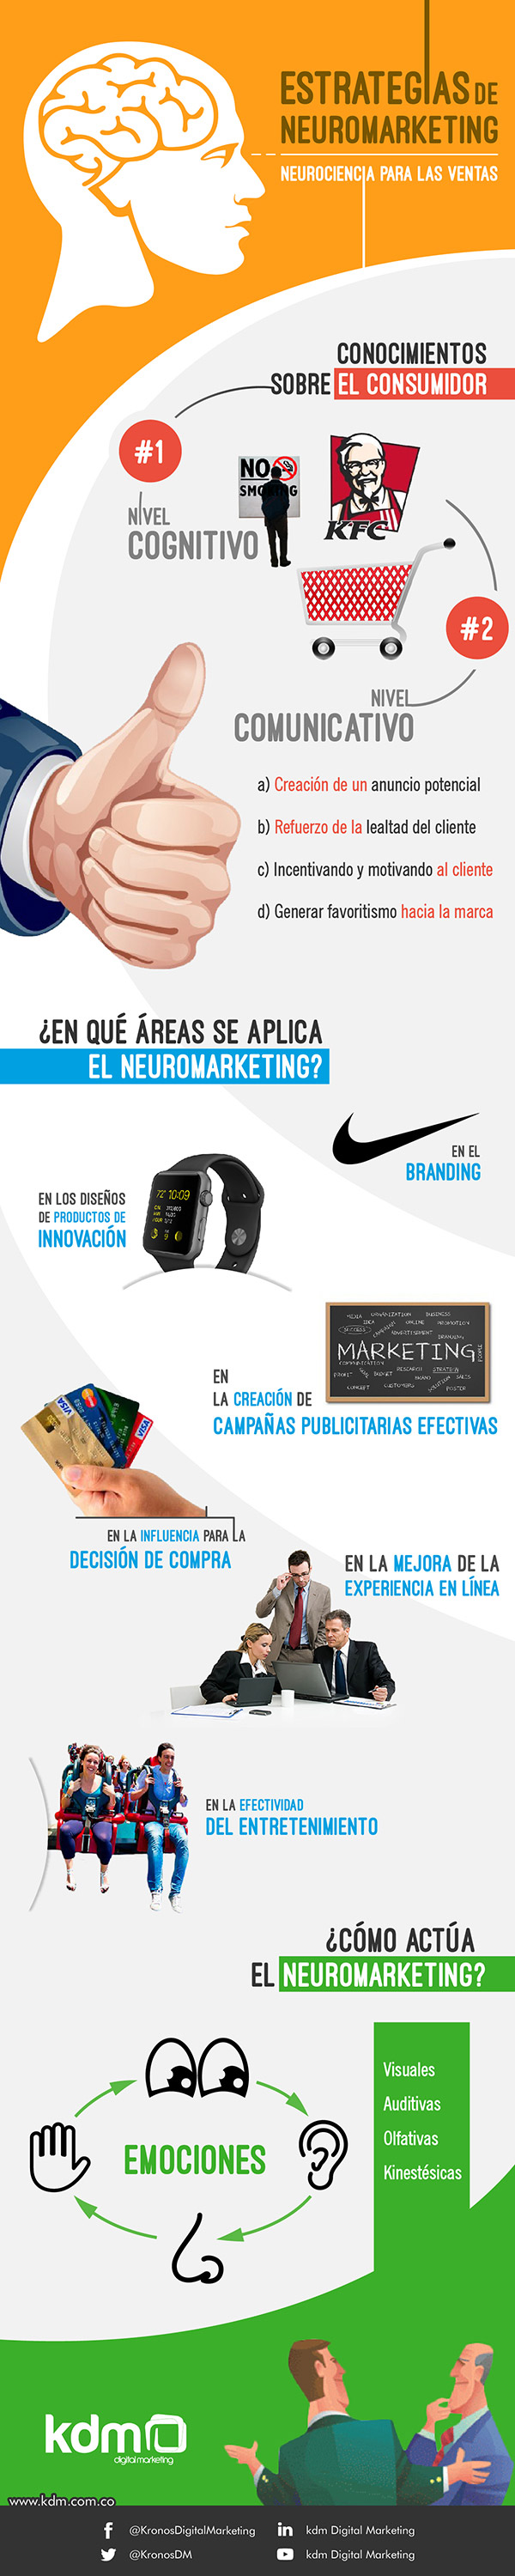 Estrategias de neuromarketing